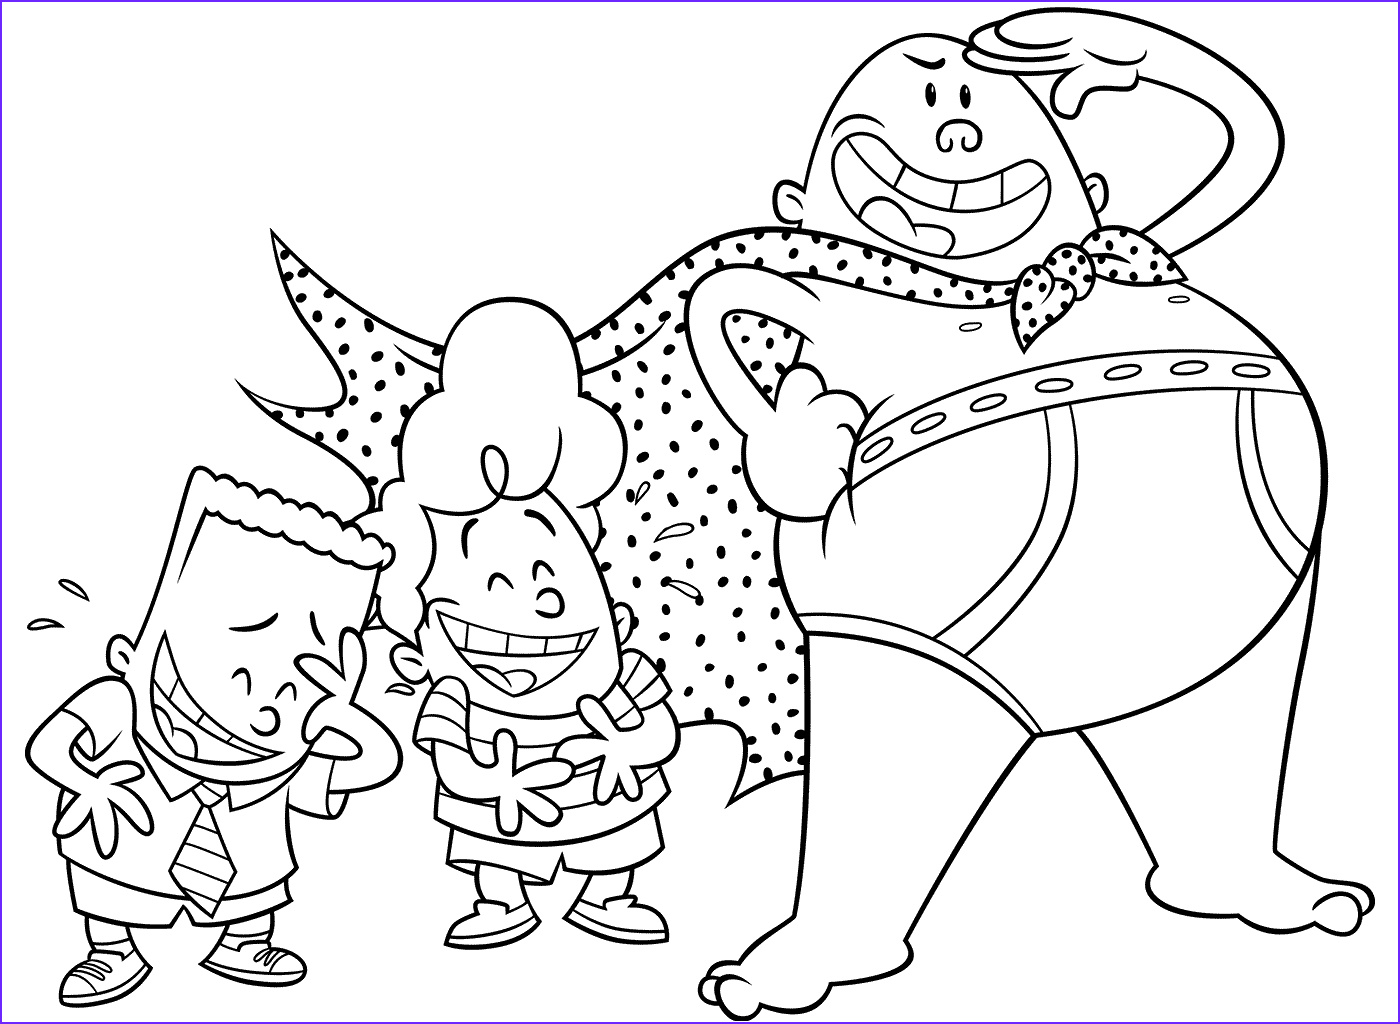 Captain Underpants Coloring New Gallery Captain Underpants Colouring Pages Baby Shower